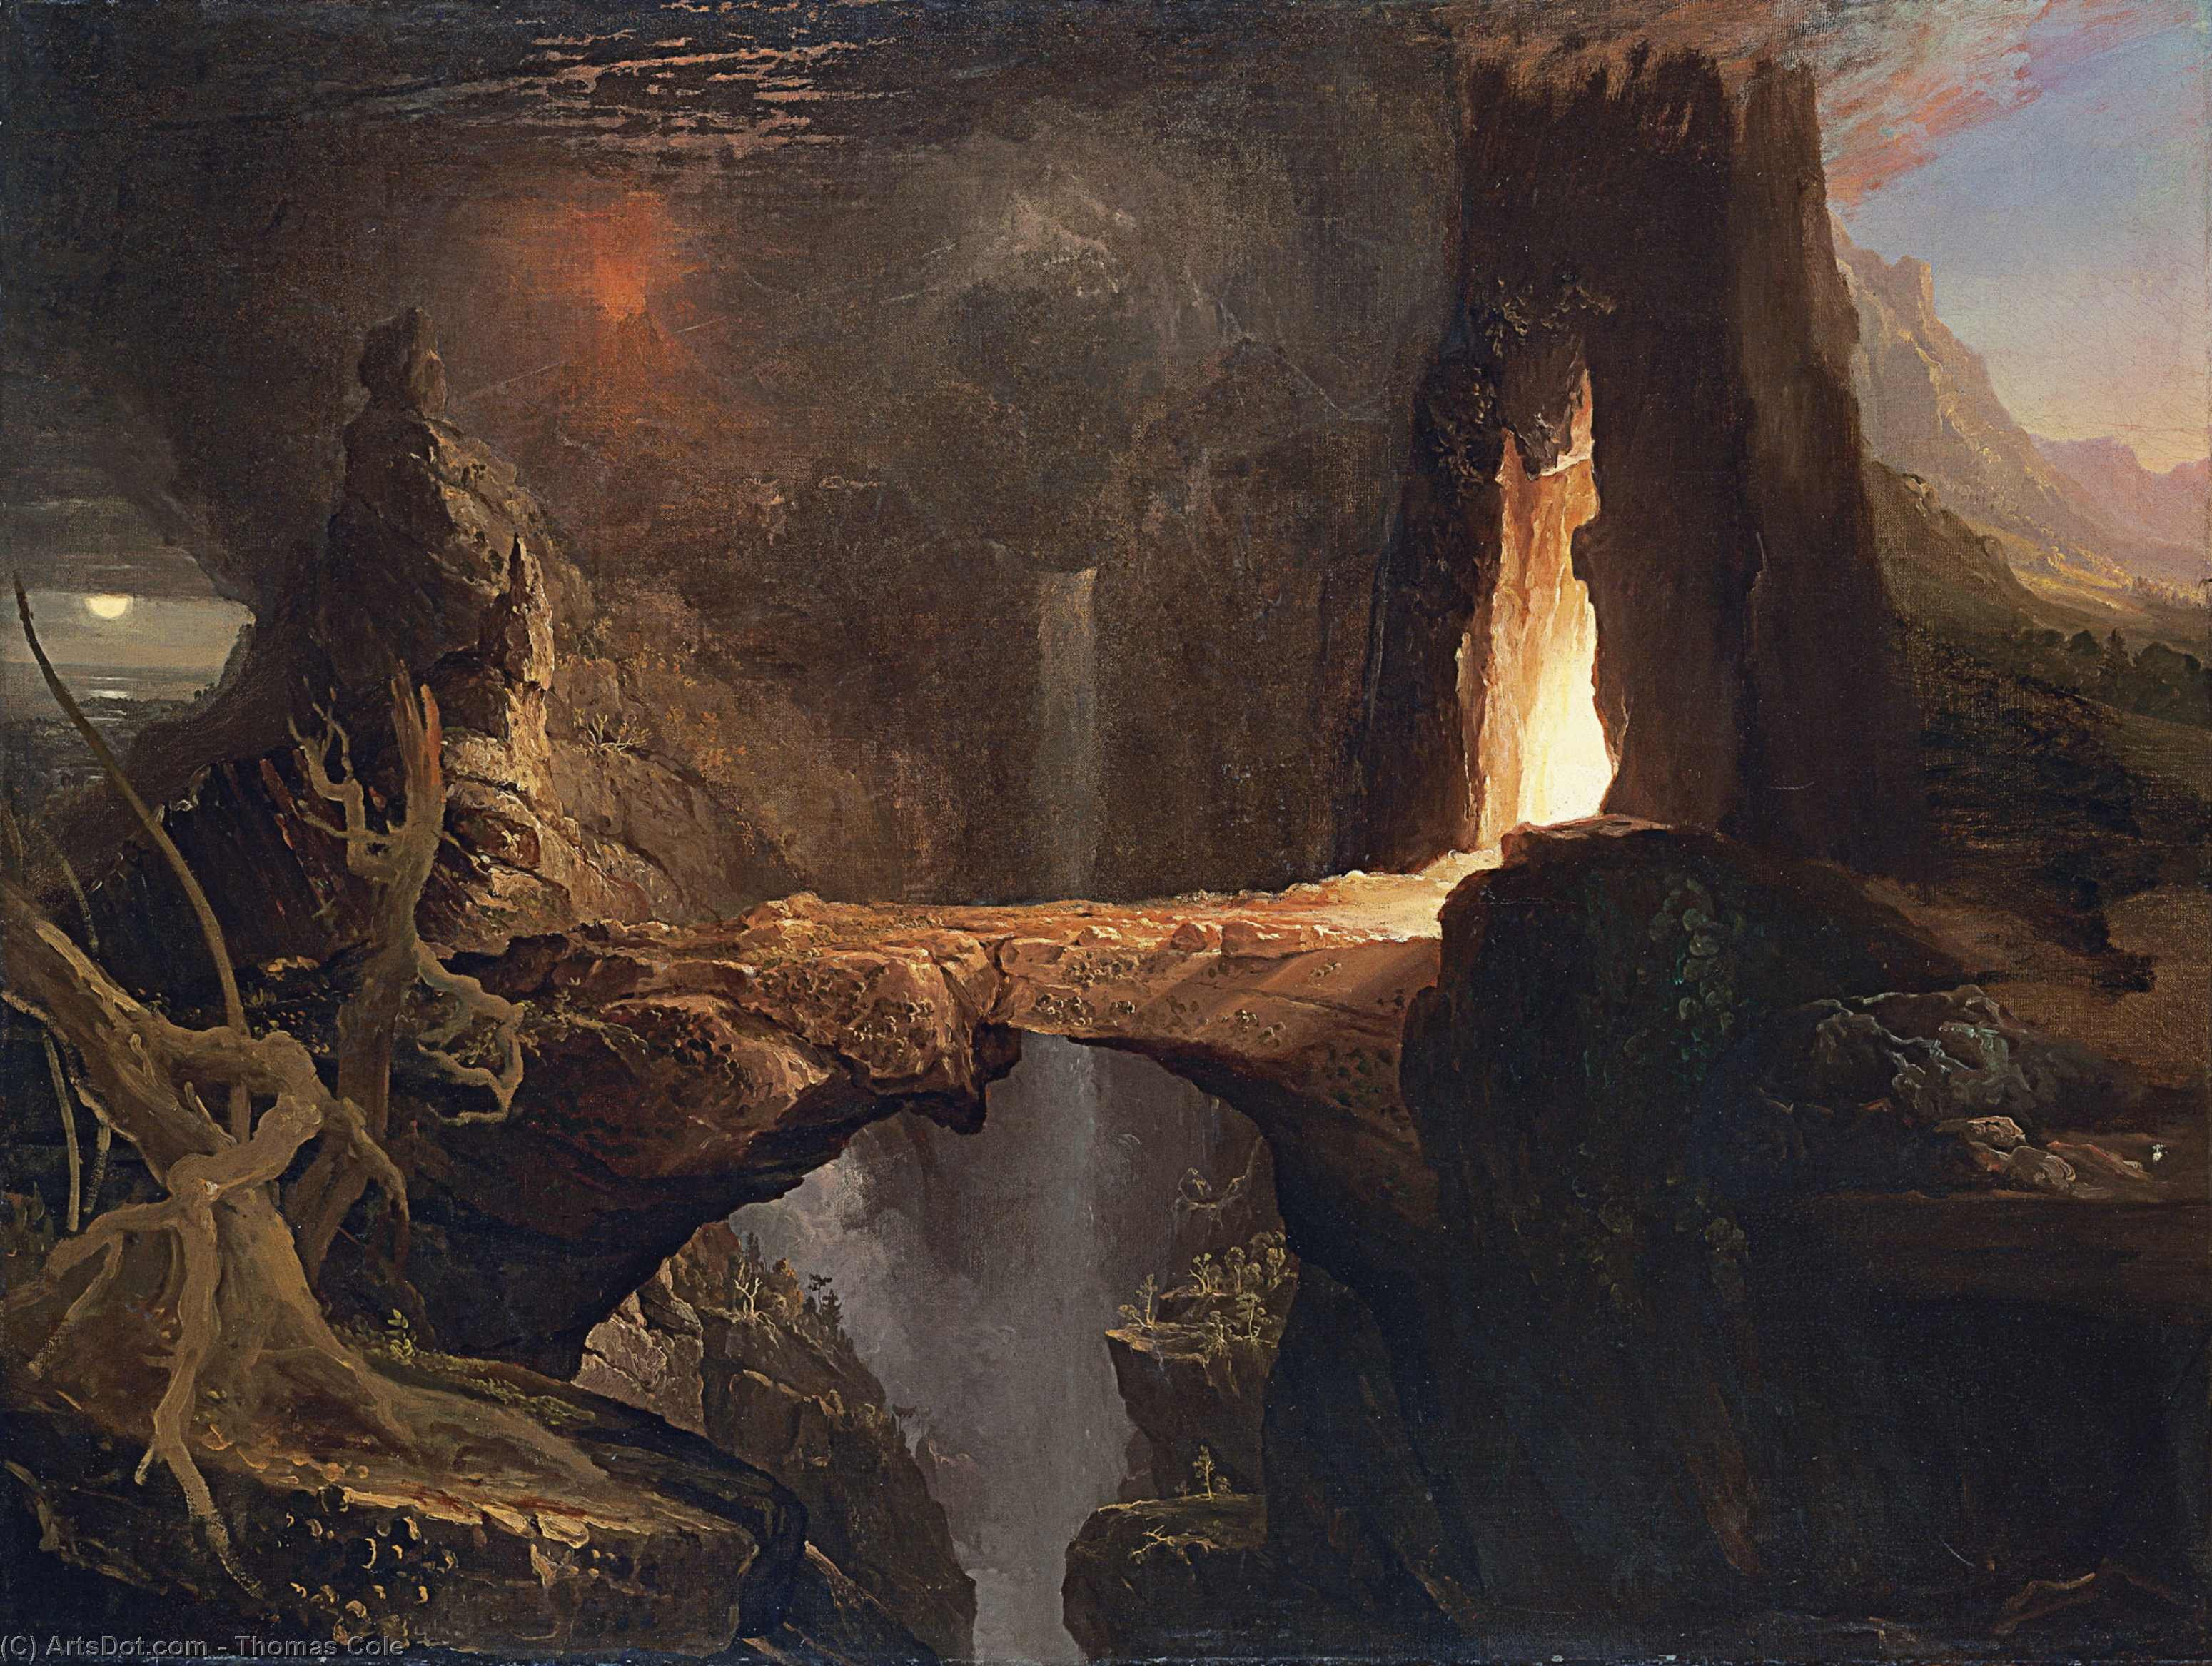 Expulsion , lune et firelight, huile sur toile de Thomas Cole (1801-1848, United Kingdom)